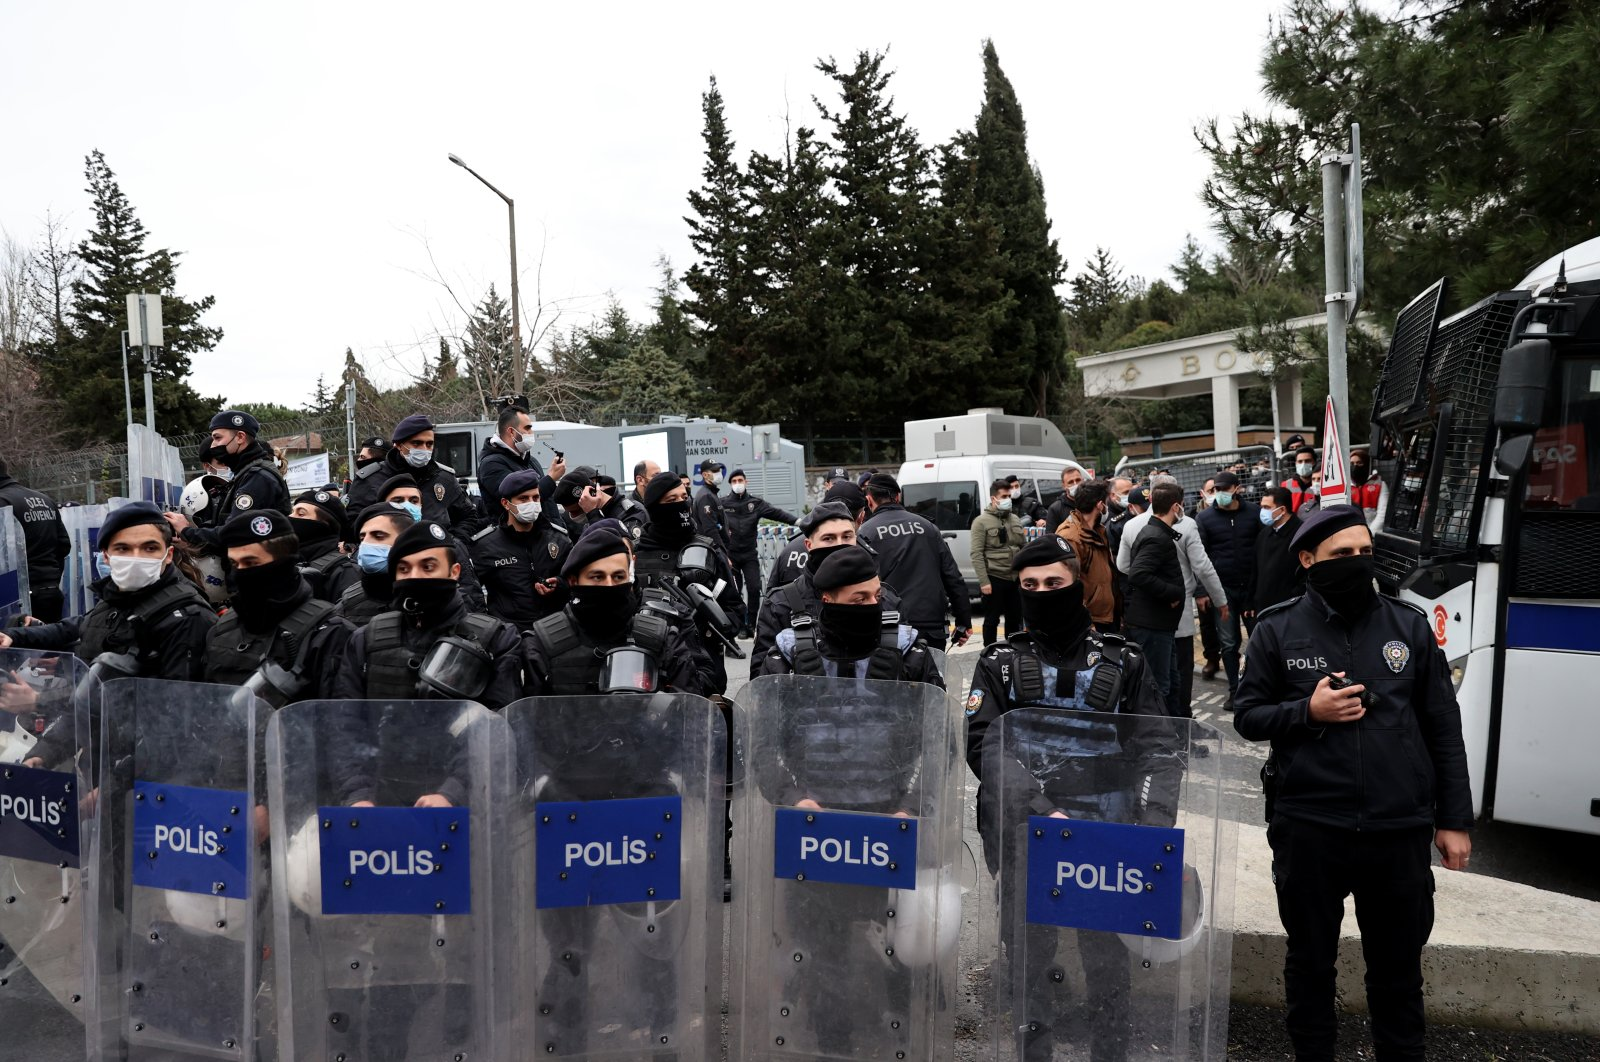 Riot police stand guard outside the entrance of Boğaziçi University, in Istanbul, Turkey, Feb. 2, 2021. (AA PHOTO)